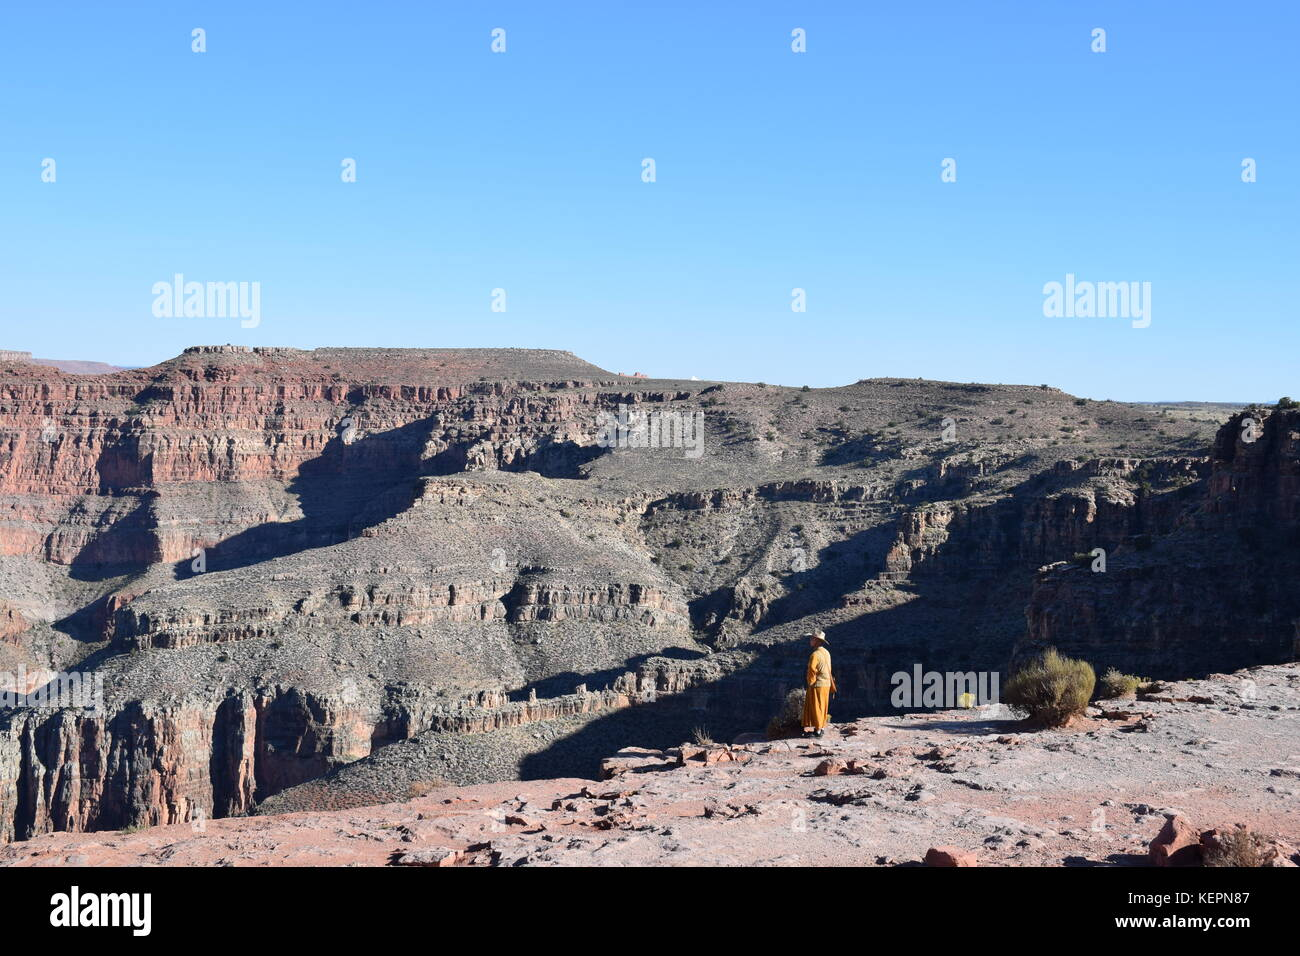 Amazing Views From The Grand Canyon Skywalk A Horseshoe